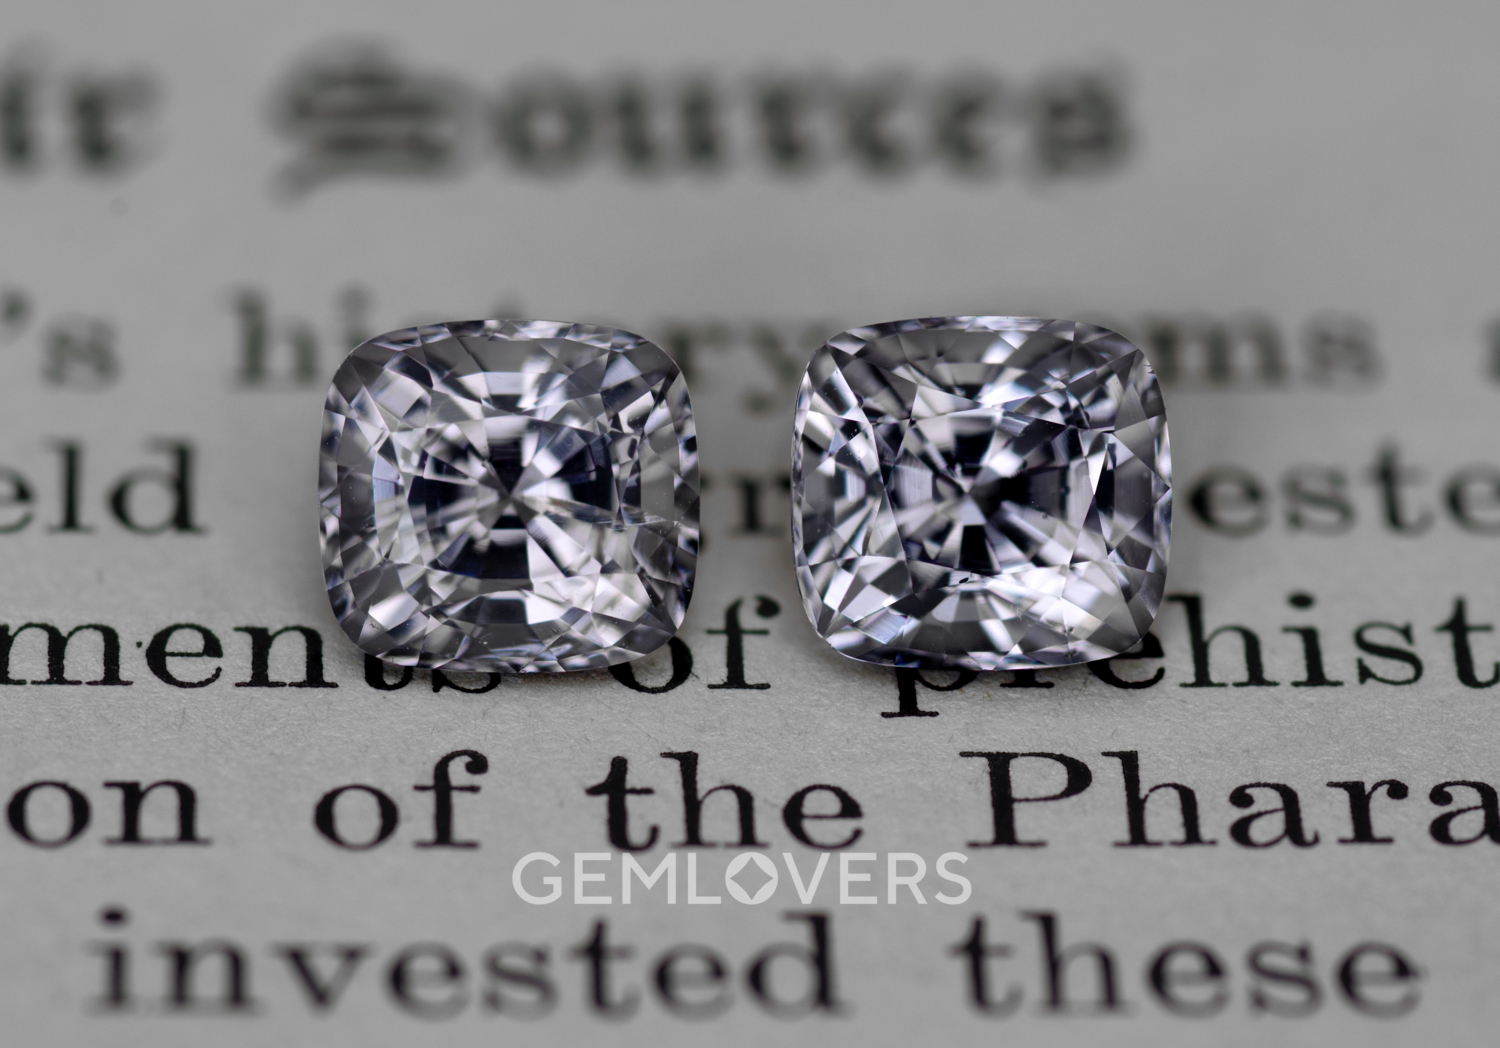 A pair of steel gray natural spinels